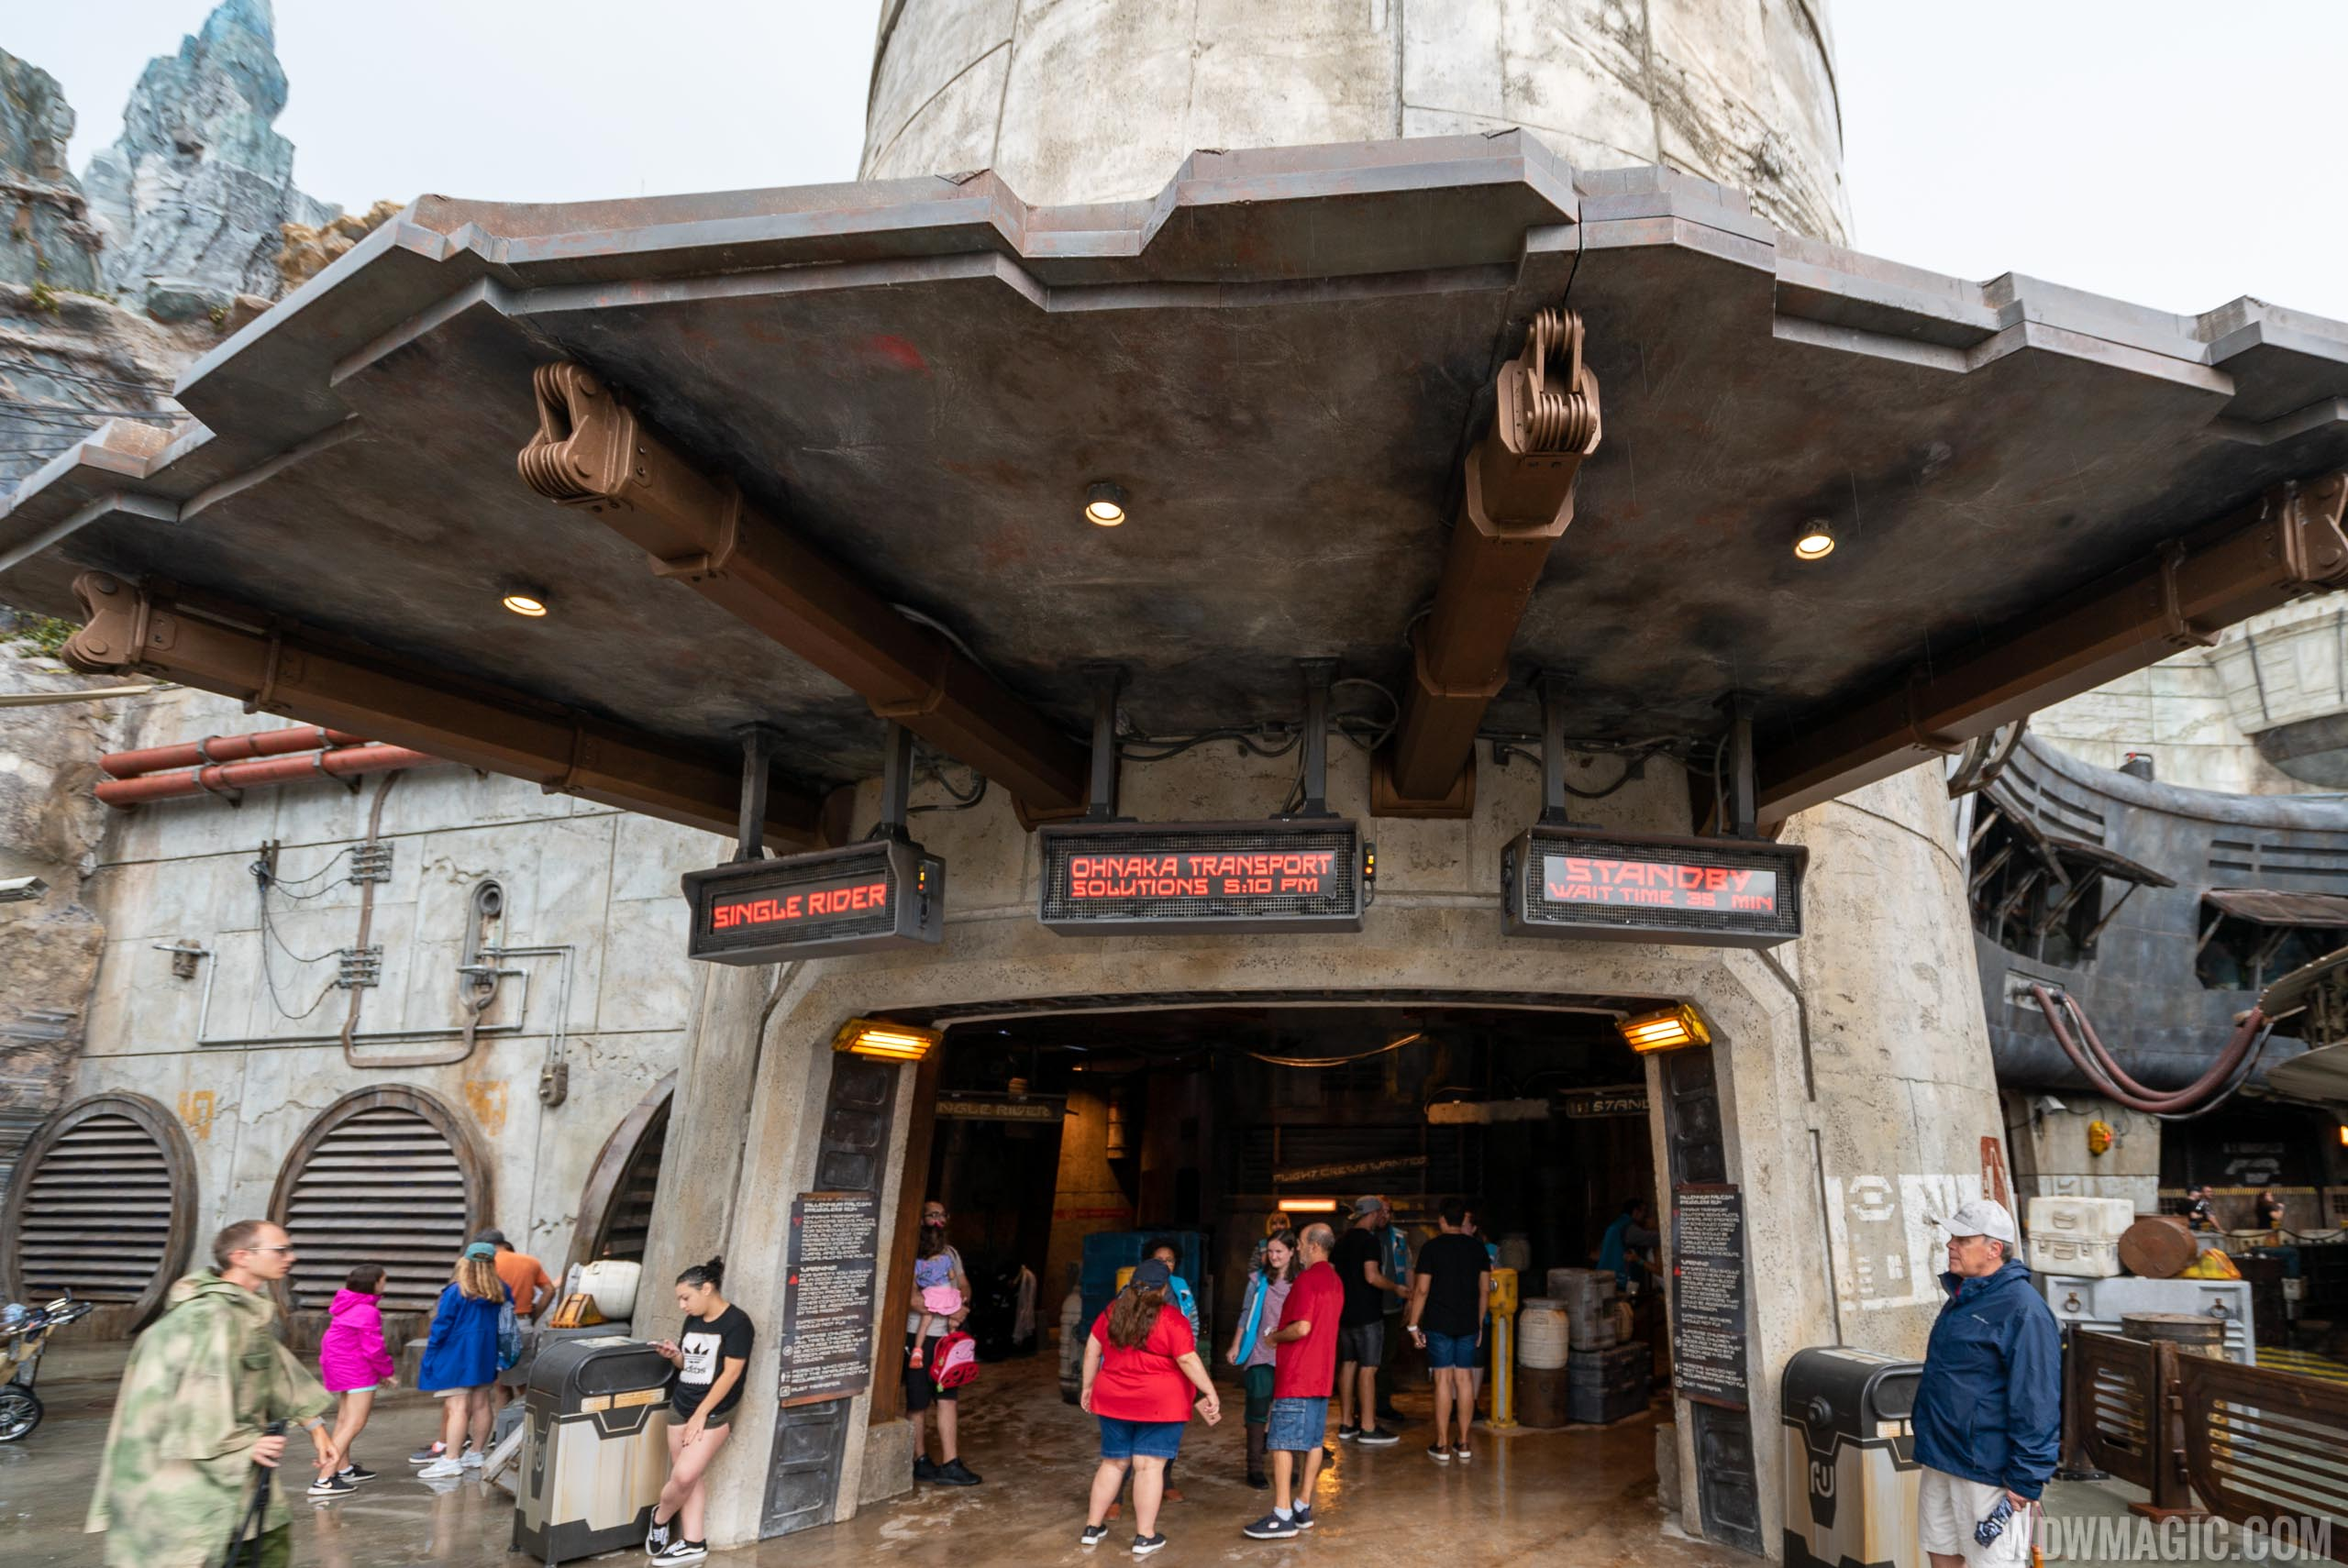 Millennium Falcon Smugglers Run at Disney's Hollywood Studios